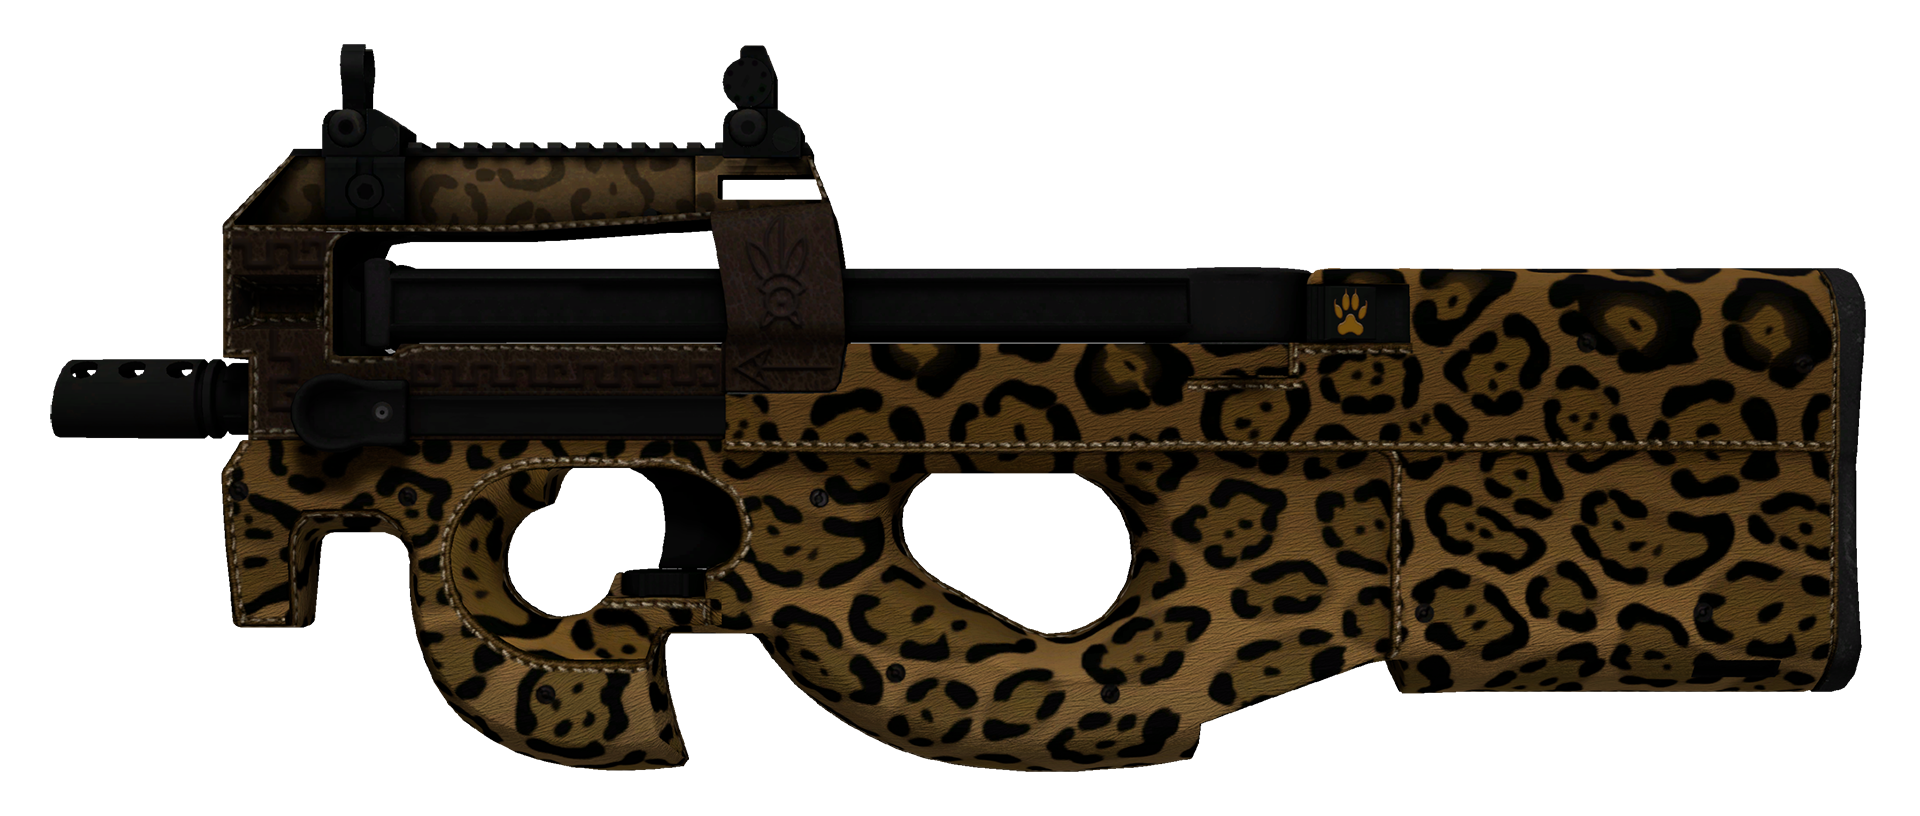 P90 Run and Hide Large Rendering